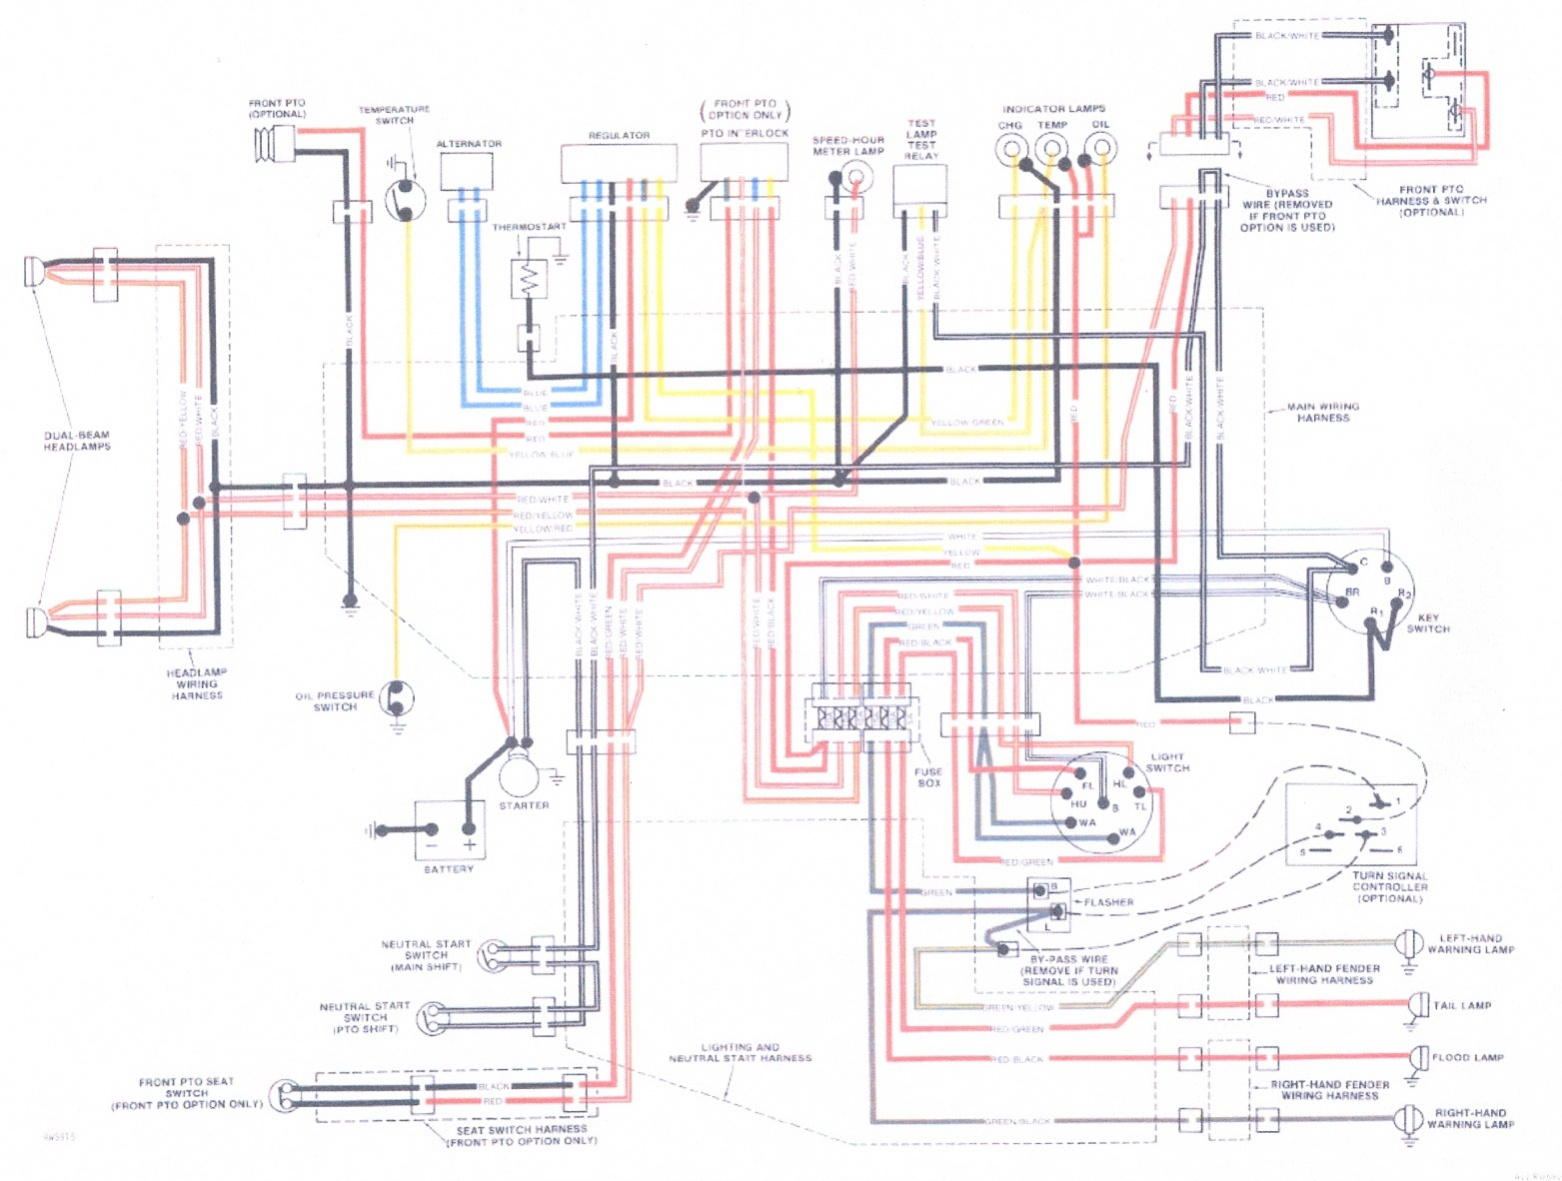 Need A Wiring Color Code The Friendliest John Deere 350 Diagram Click Image For Larger Version Name Scan0001 Zpsa9ae2029 Views 6624 Size 4145